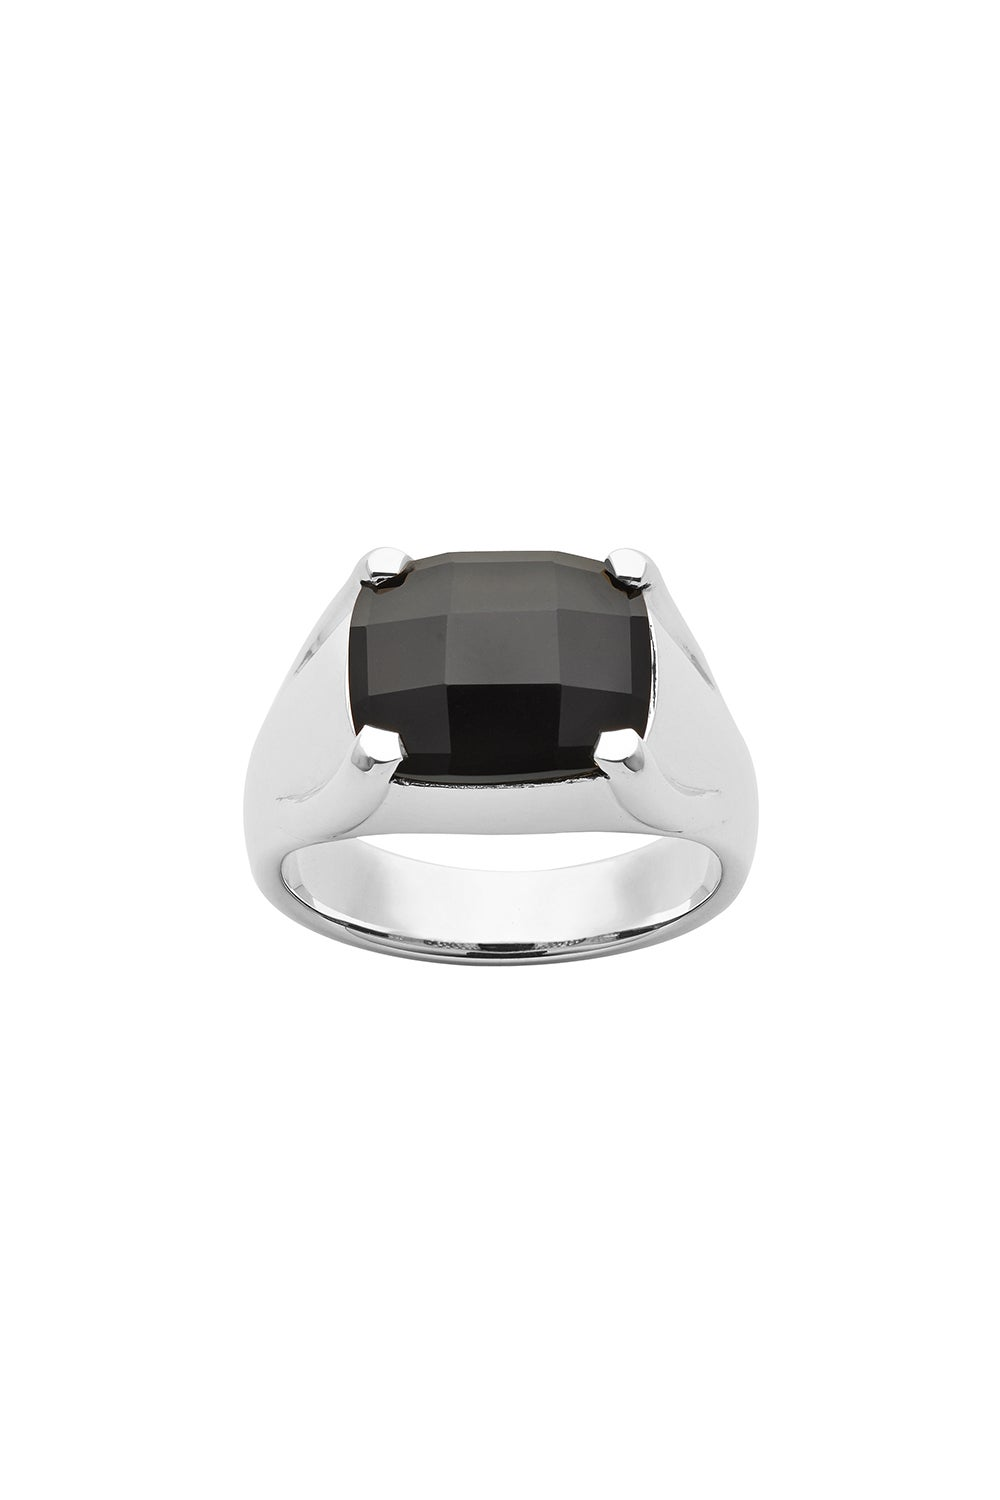 Chequerboard 12 X 10mm Onyx Silver